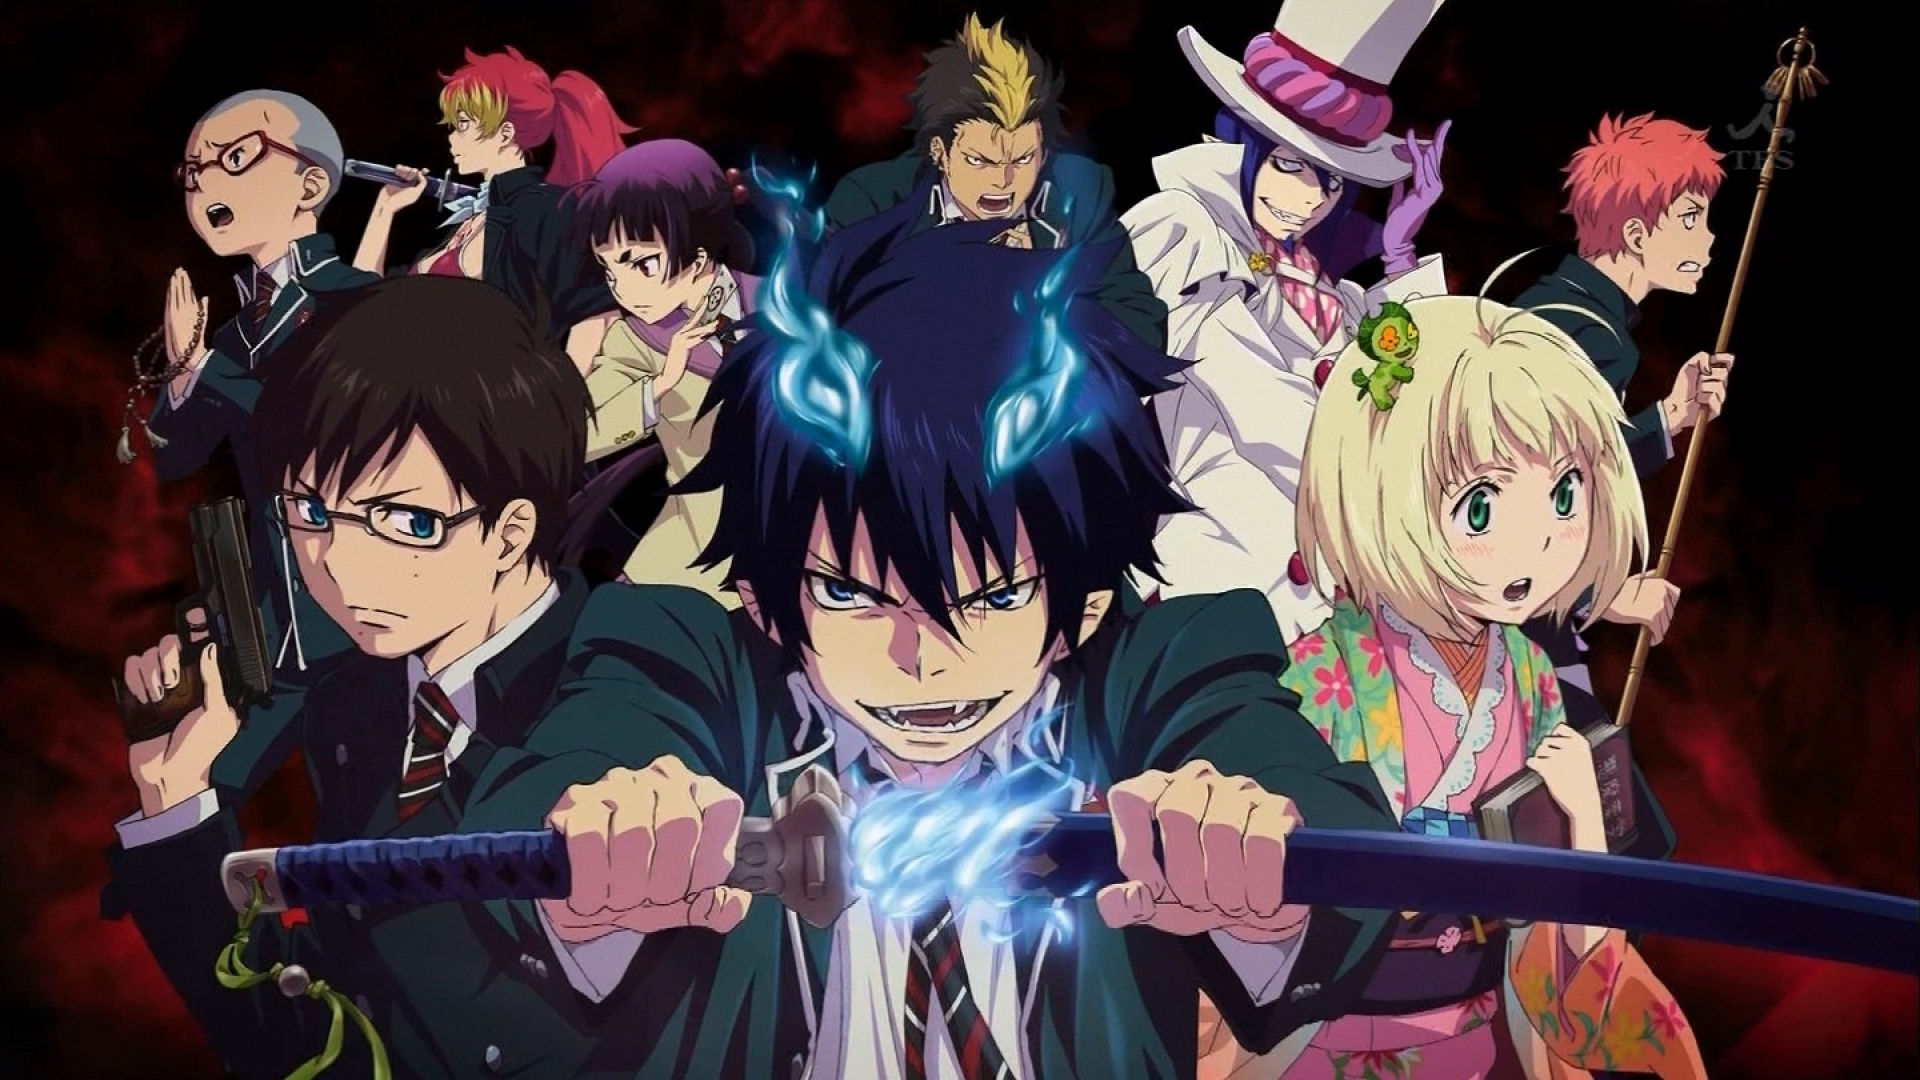 Animes Online Download Anime Ao No Exorcist Episode 1 25 Complete English Subbed Waeeda 1 Year Ago Download Anime 3 031